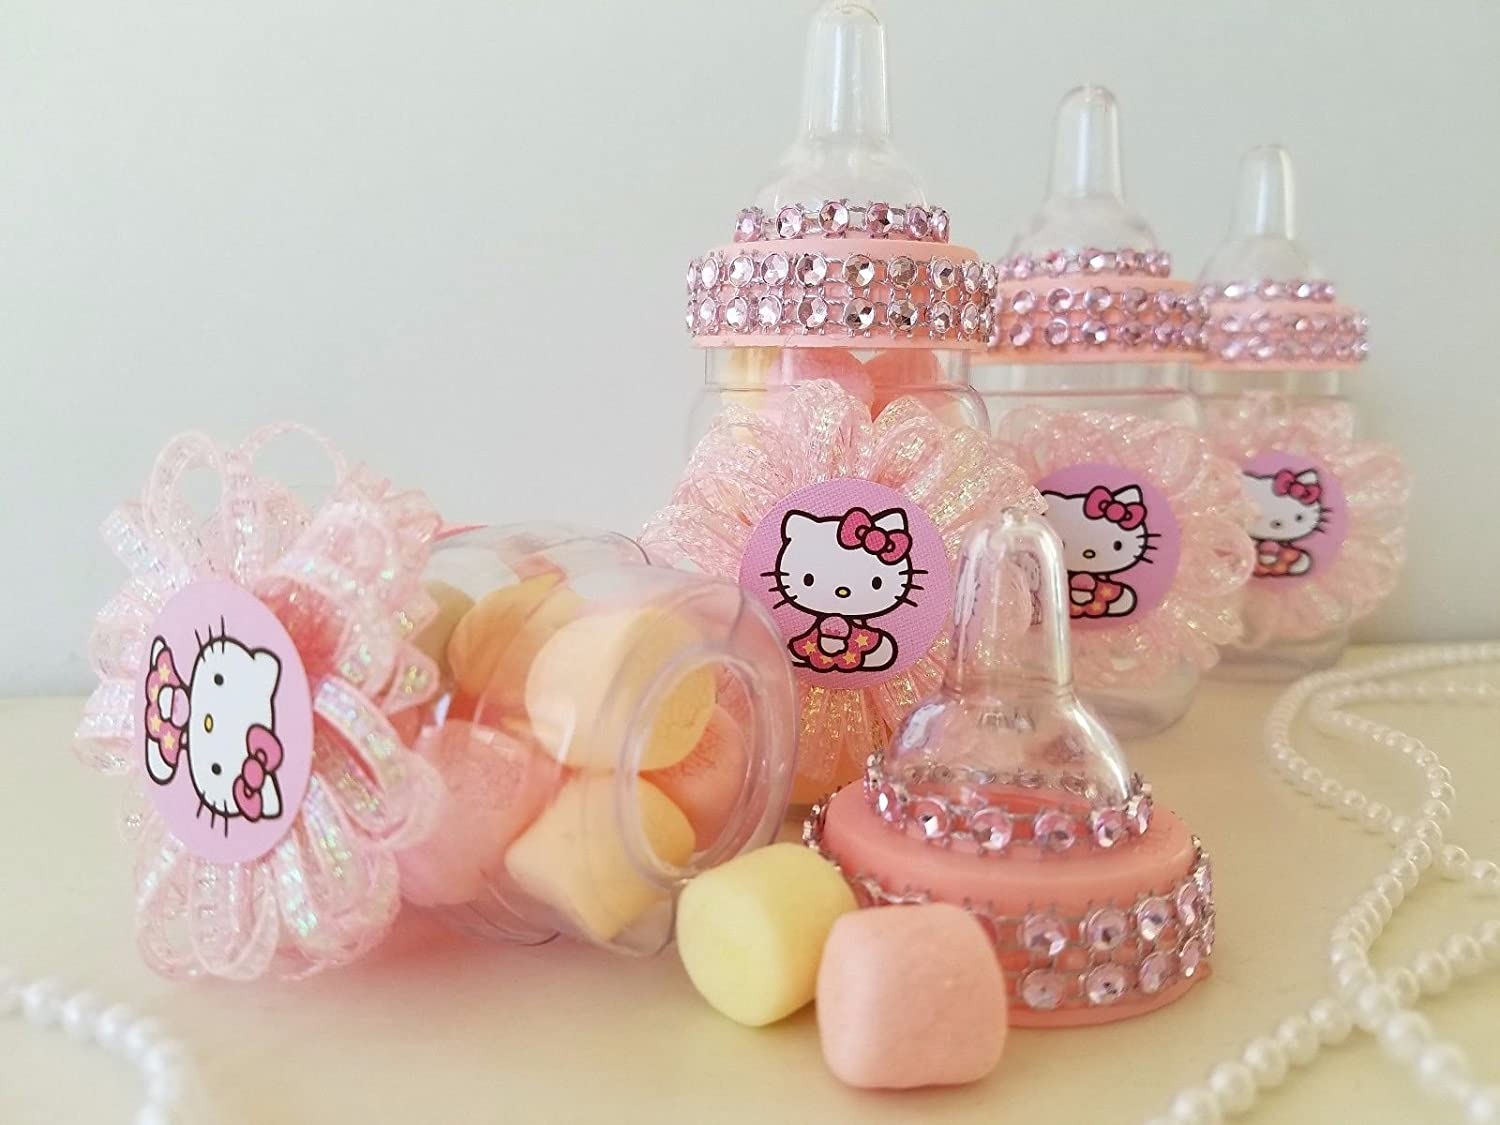 cb7c06b04 ... 12 Hello Kitty Fillable Bottles Favors Prizes Games Baby Shower Girl  Decorations Product789